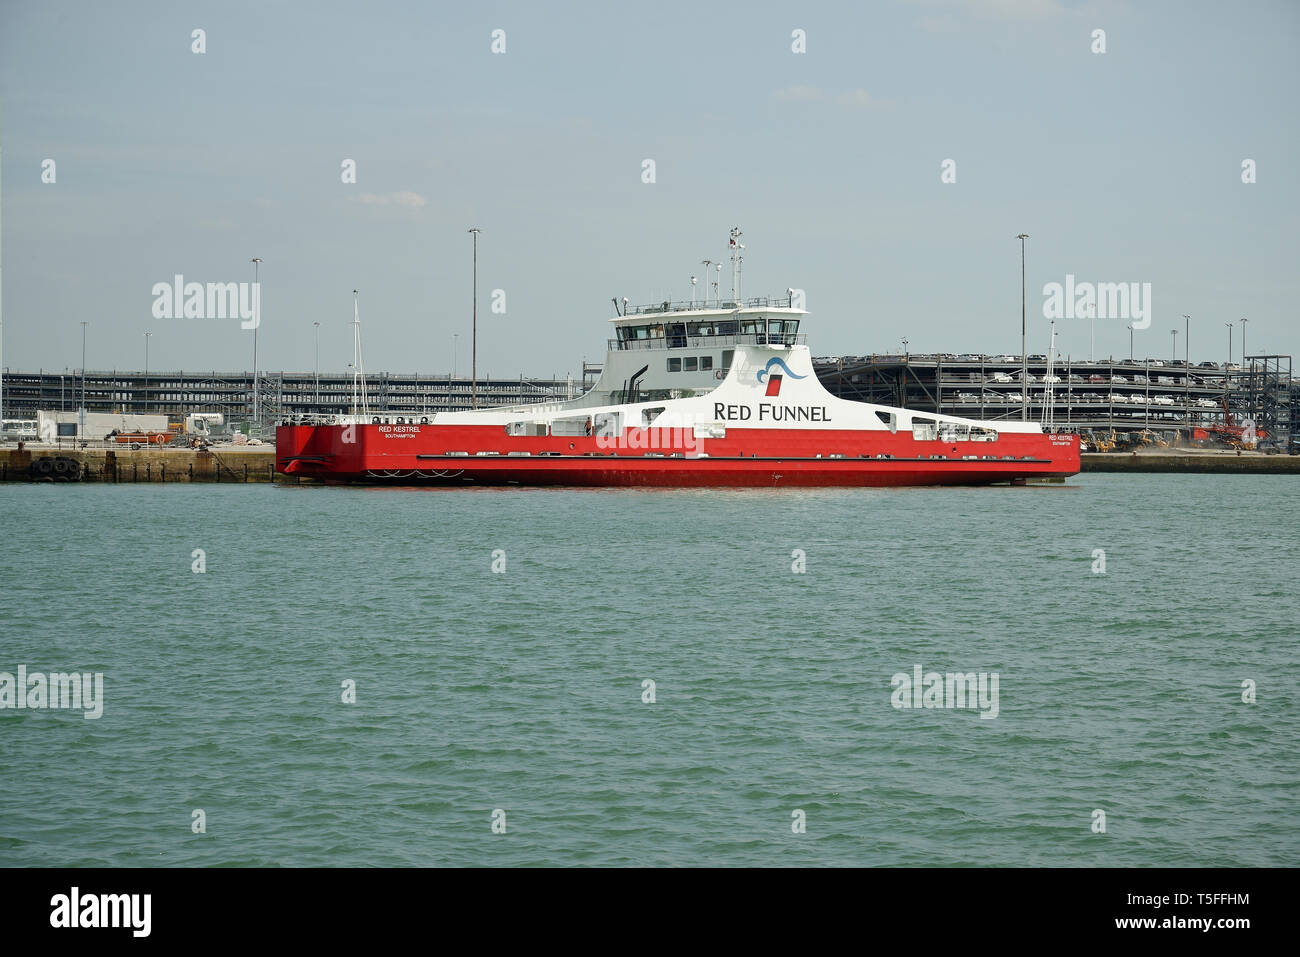 Red Funnel ferry in Southampton. - Stock Image